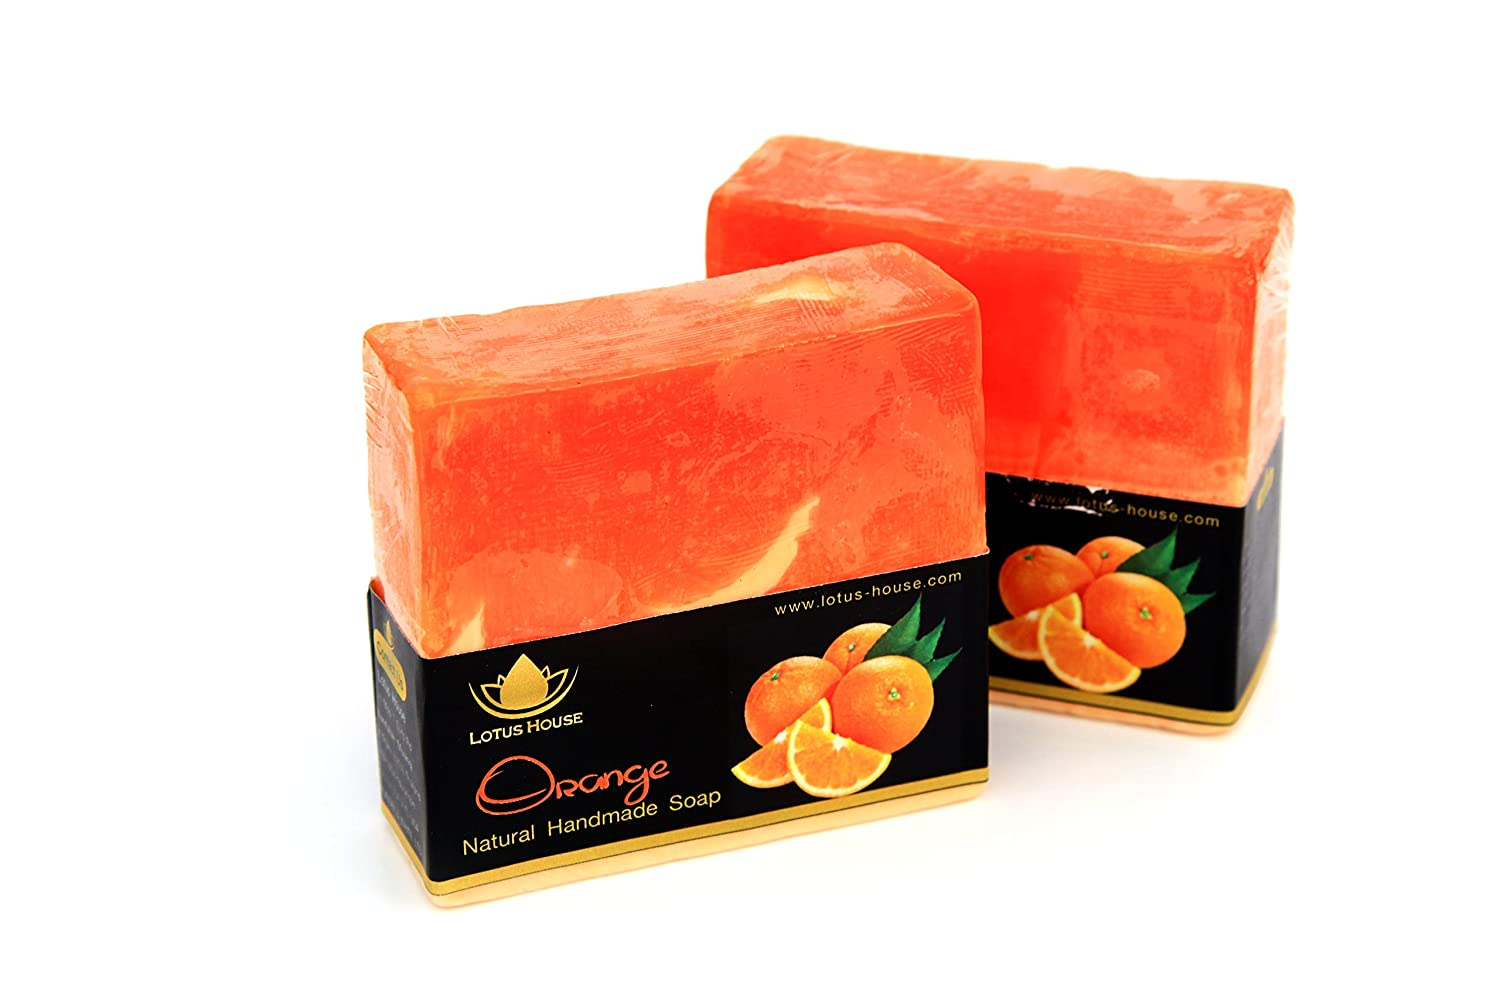 Lotus House Orange Natural Handmade Soap (300g) / 3 Bars SA0068